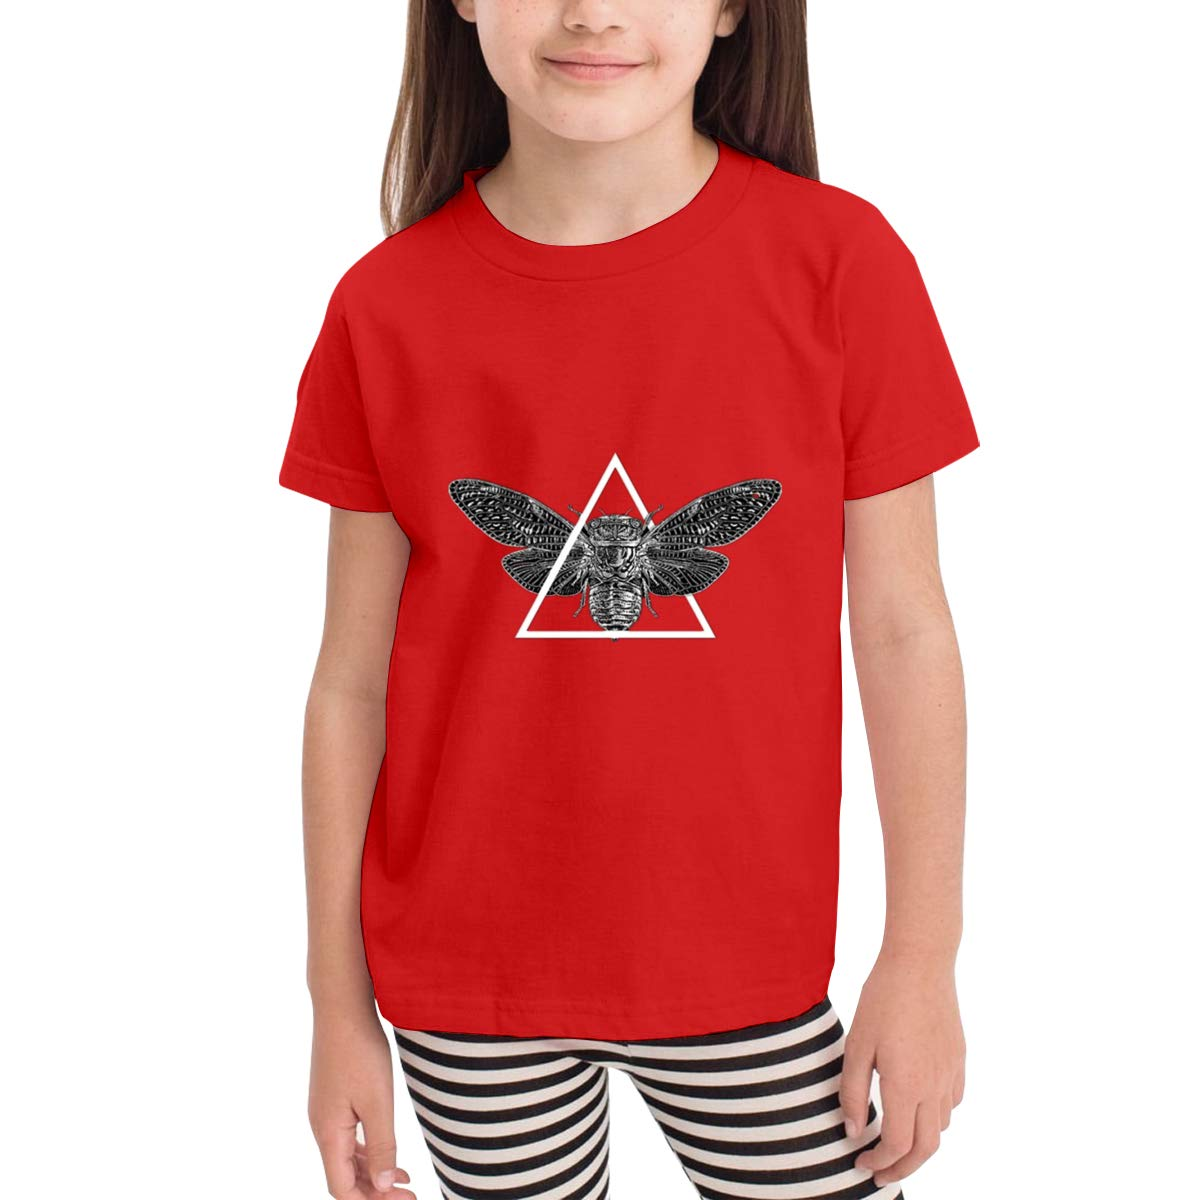 Onlybabycare Fly 100/% Cotton Toddler Baby Boys Girls Kids Short Sleeve T Shirt Top Tee Clothes 2-6 T